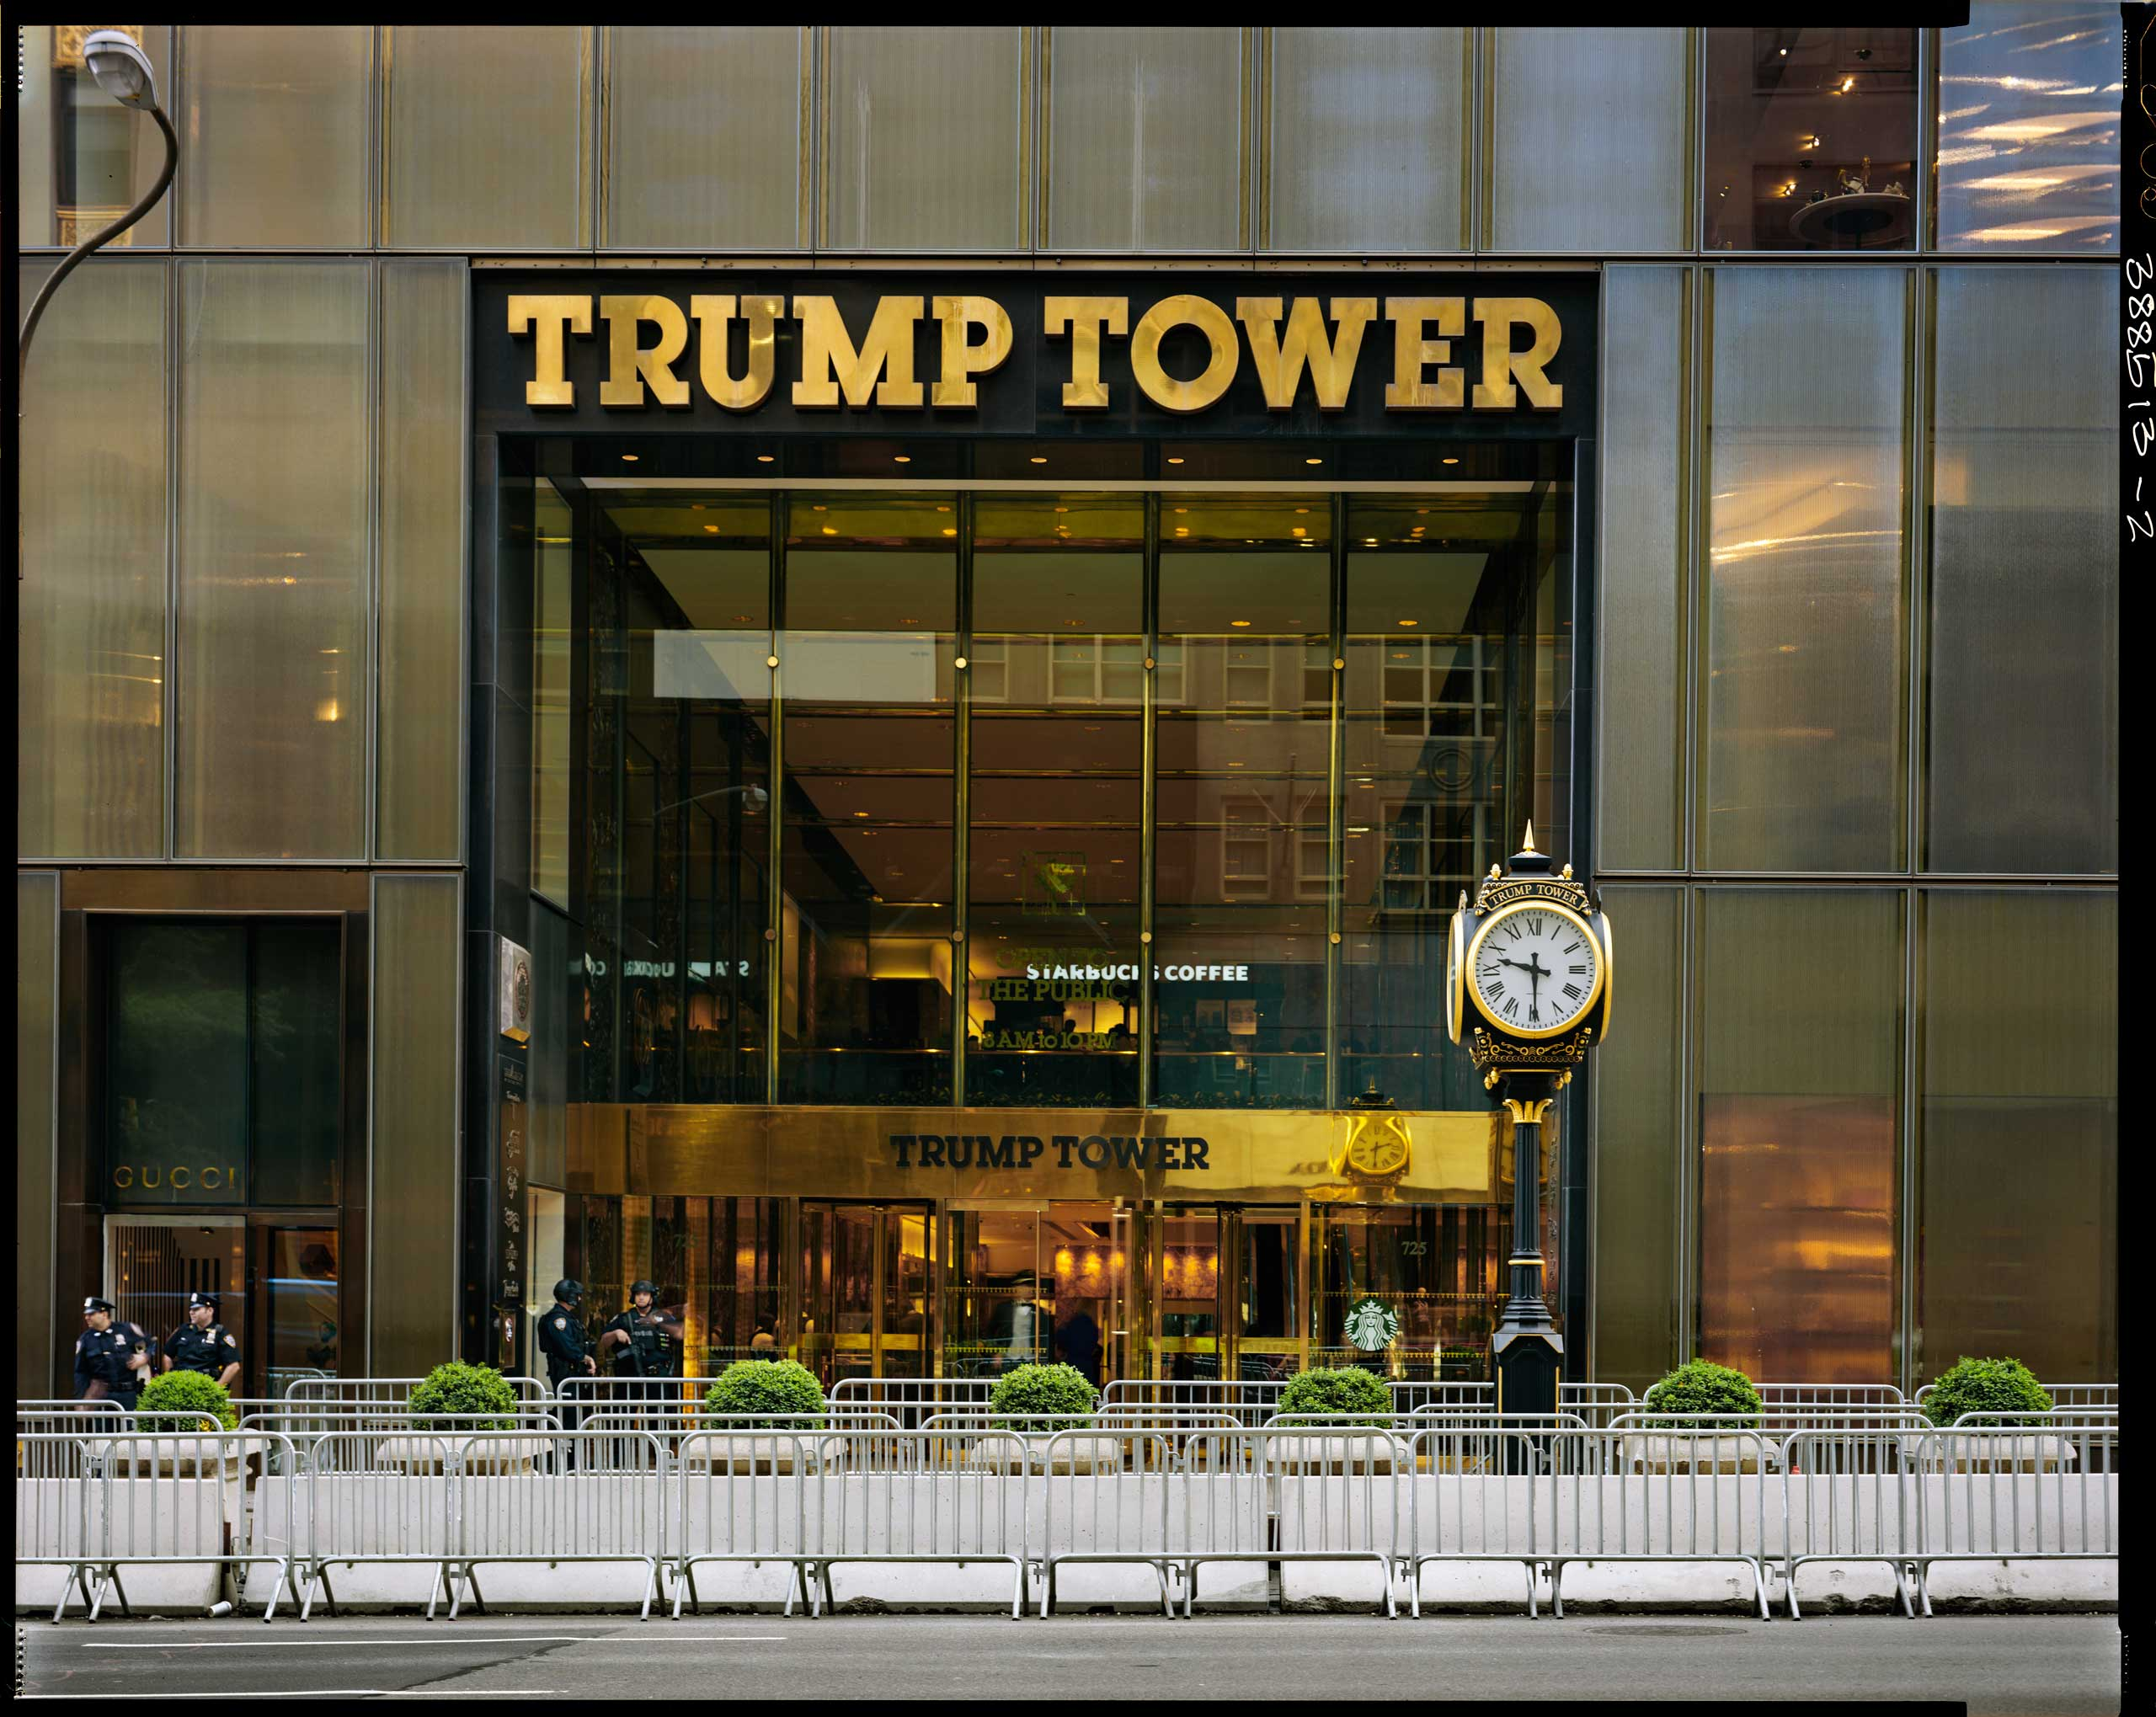 Translation of caption from Liberation: 9:30 am, May 3, 2017, 5th Avenue. It's Fort Knox in midtown Manhattan. The man in the red tie has not skimped on the gold color, we are reminded of Scrooge McDuck on this already outrageously wealthy avenue. Designed in 1981 and finished by 1985, nobody payed attention to this ingot-shaped building. Melania would like to live here permanently, causing enormous security issues on top of an exuberant price tag. Good news, after all, the number of New York Times subscribers has doubled since Donald Trump's arrival in office.